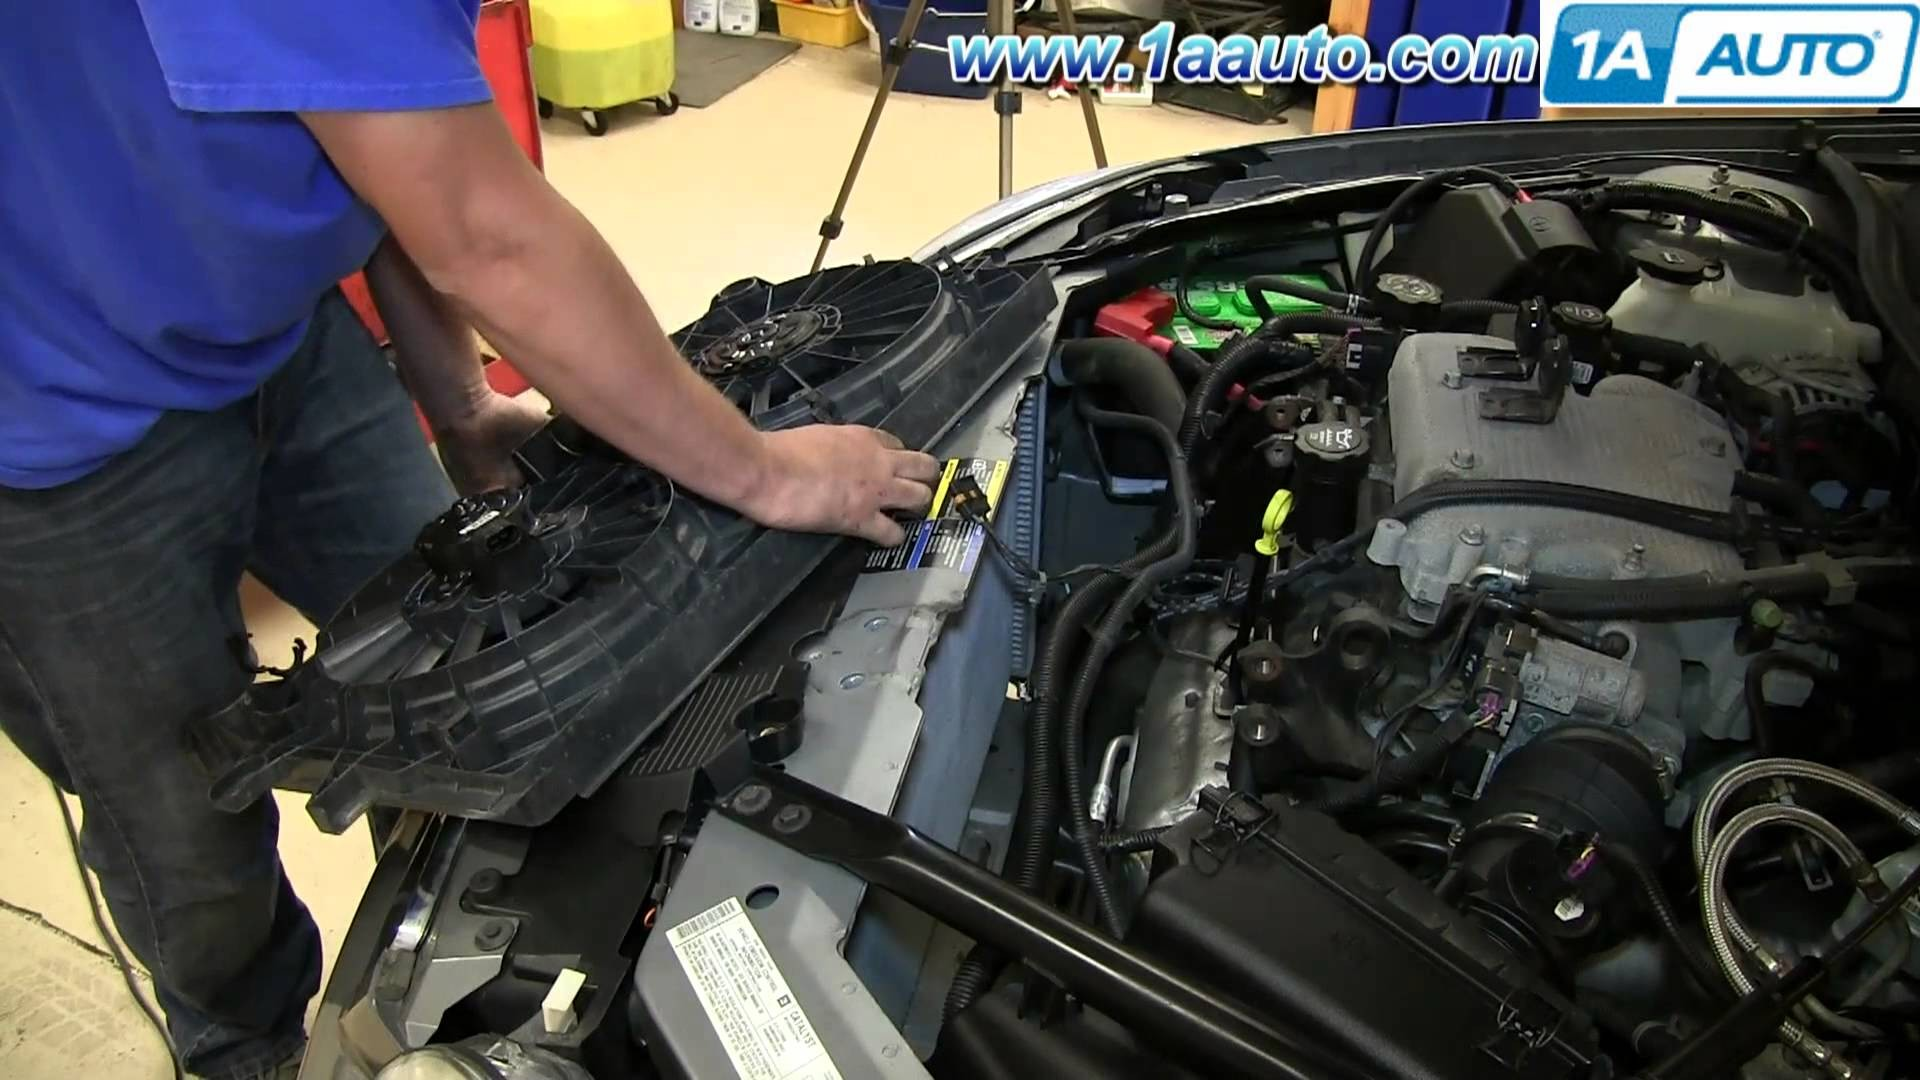 2007 Chevy Uplander Engine Diagram How to Install Replace Engine Radiator  Cooling Fan 2006 12 Chevy